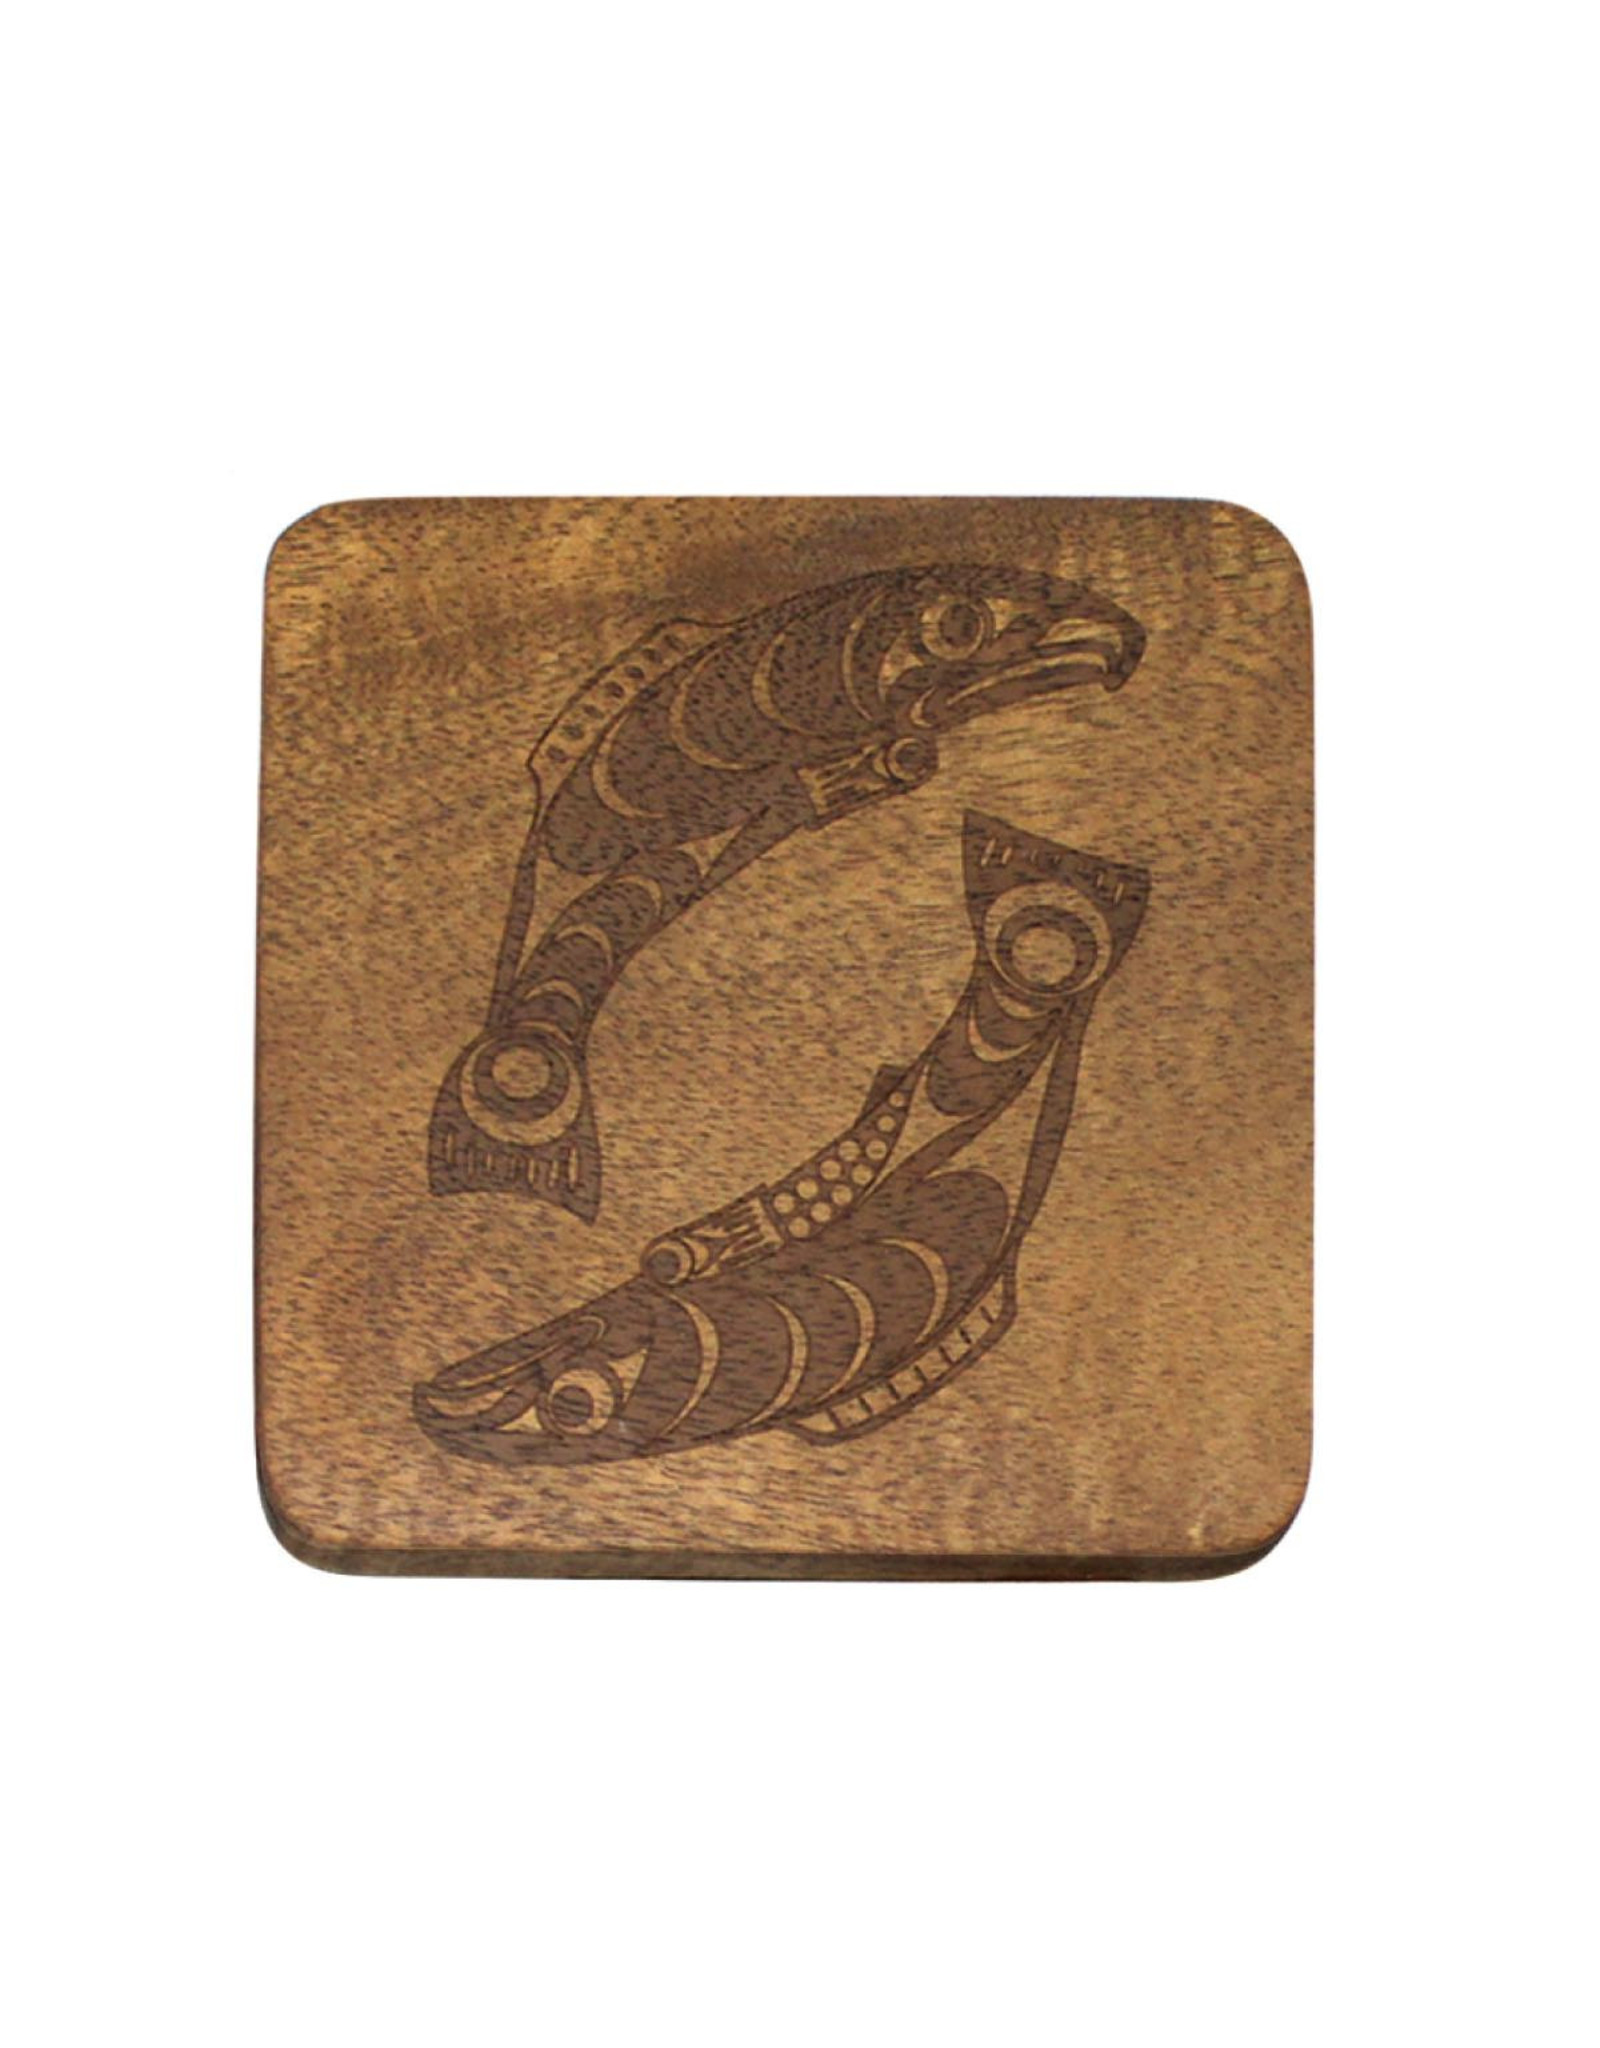 Acacia Wood Coasters - Salmon by Francis Horne Sr.